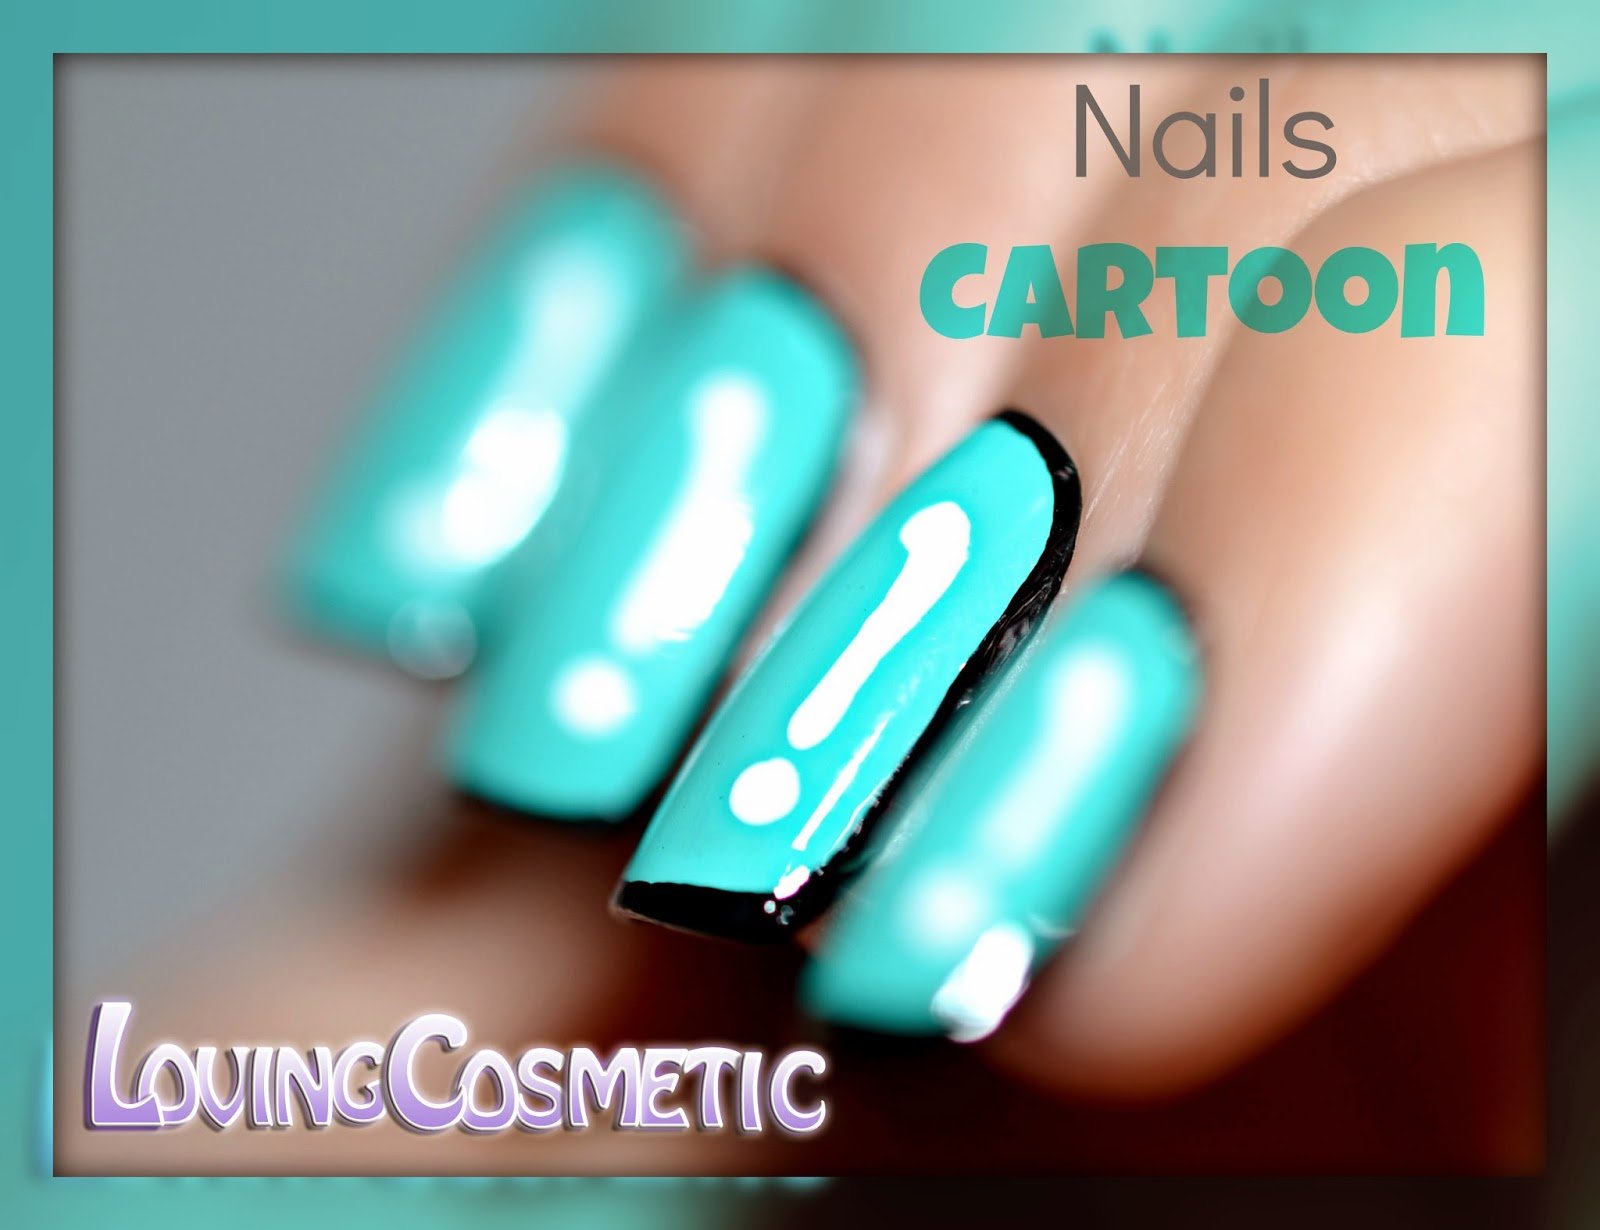 Nail art cartoon uñas diseño manicura manicure nails easy comic